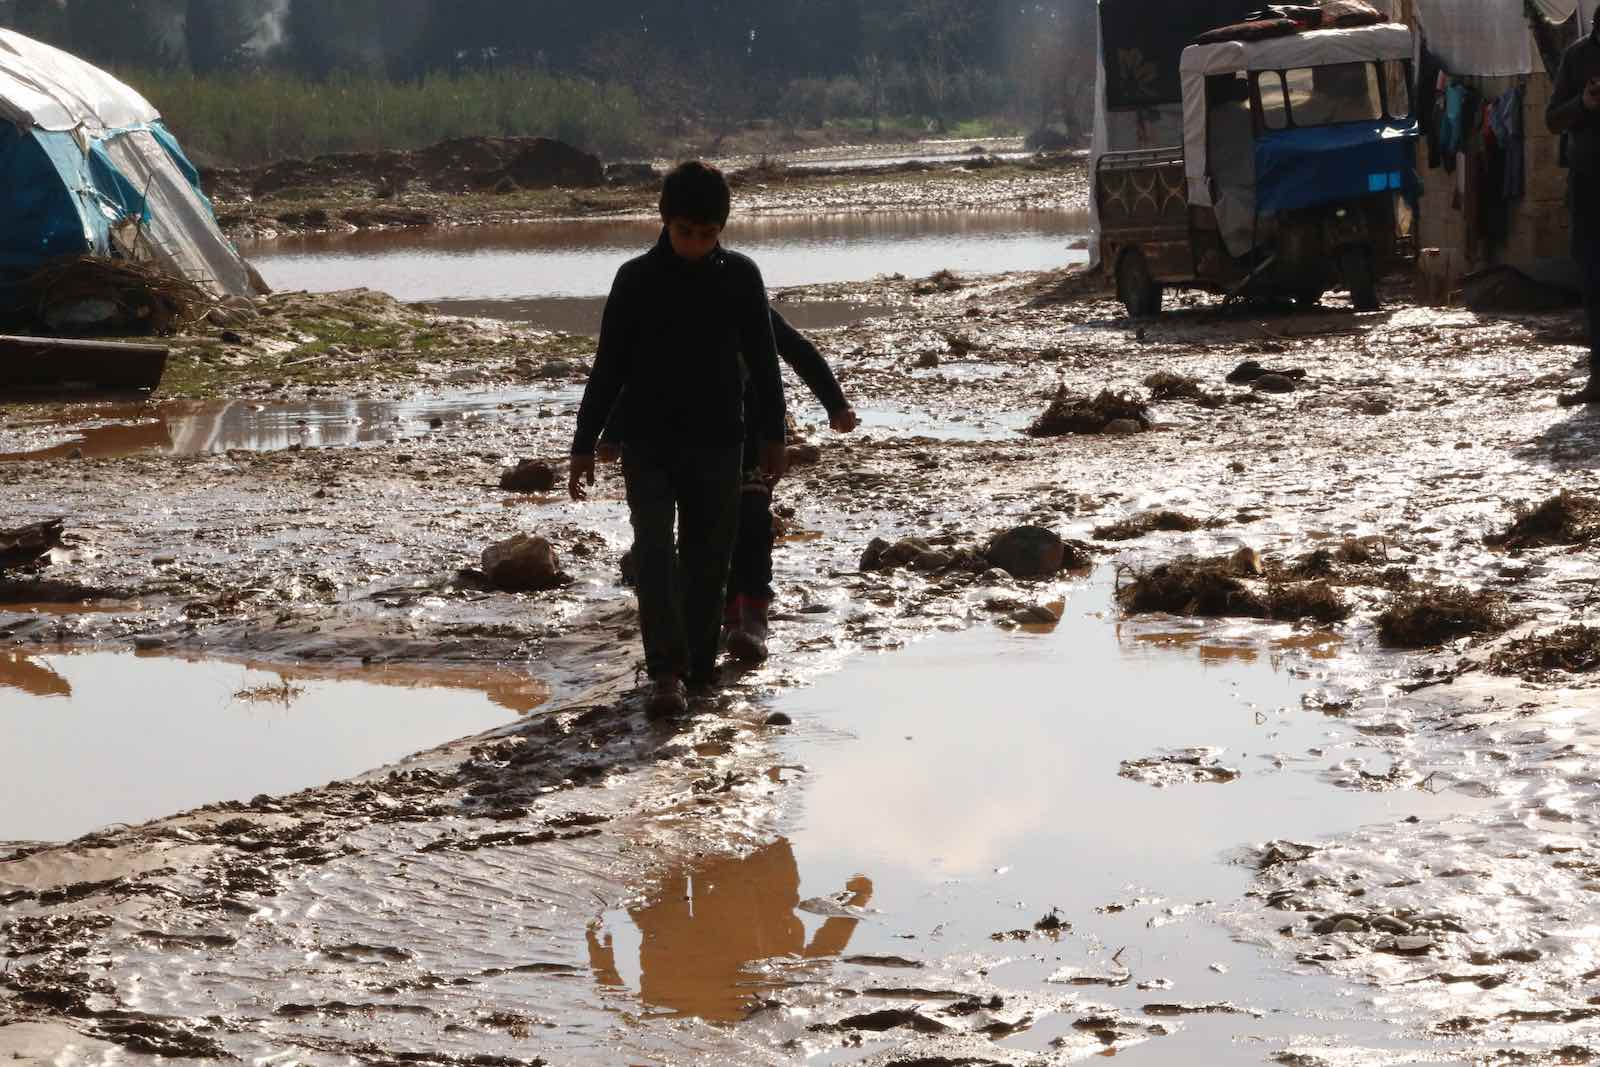 Flooding at a camp in Syria's north-western Afrin province on 31 January (Muhammed Abdullah/Anadolu Agency via Getty Images)